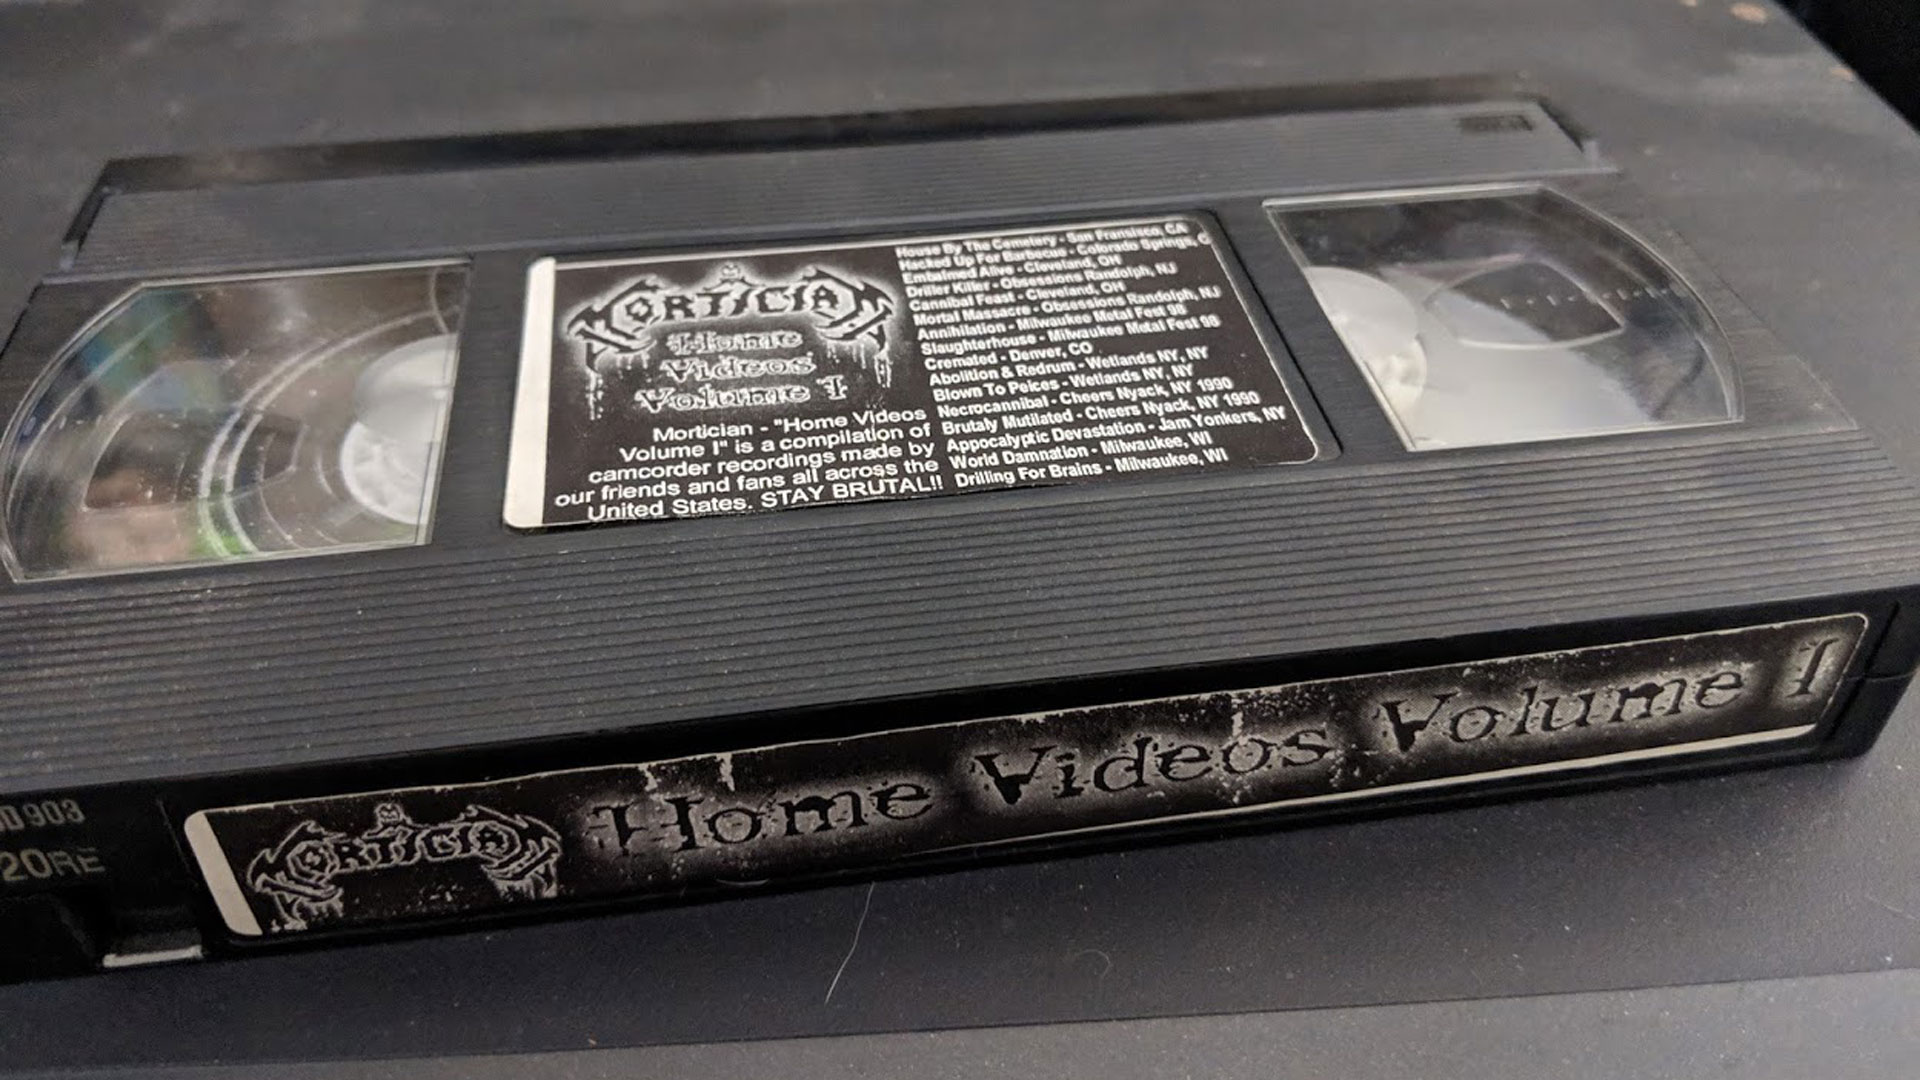 Mortician Home Videos Volume 1 VHS Transfer